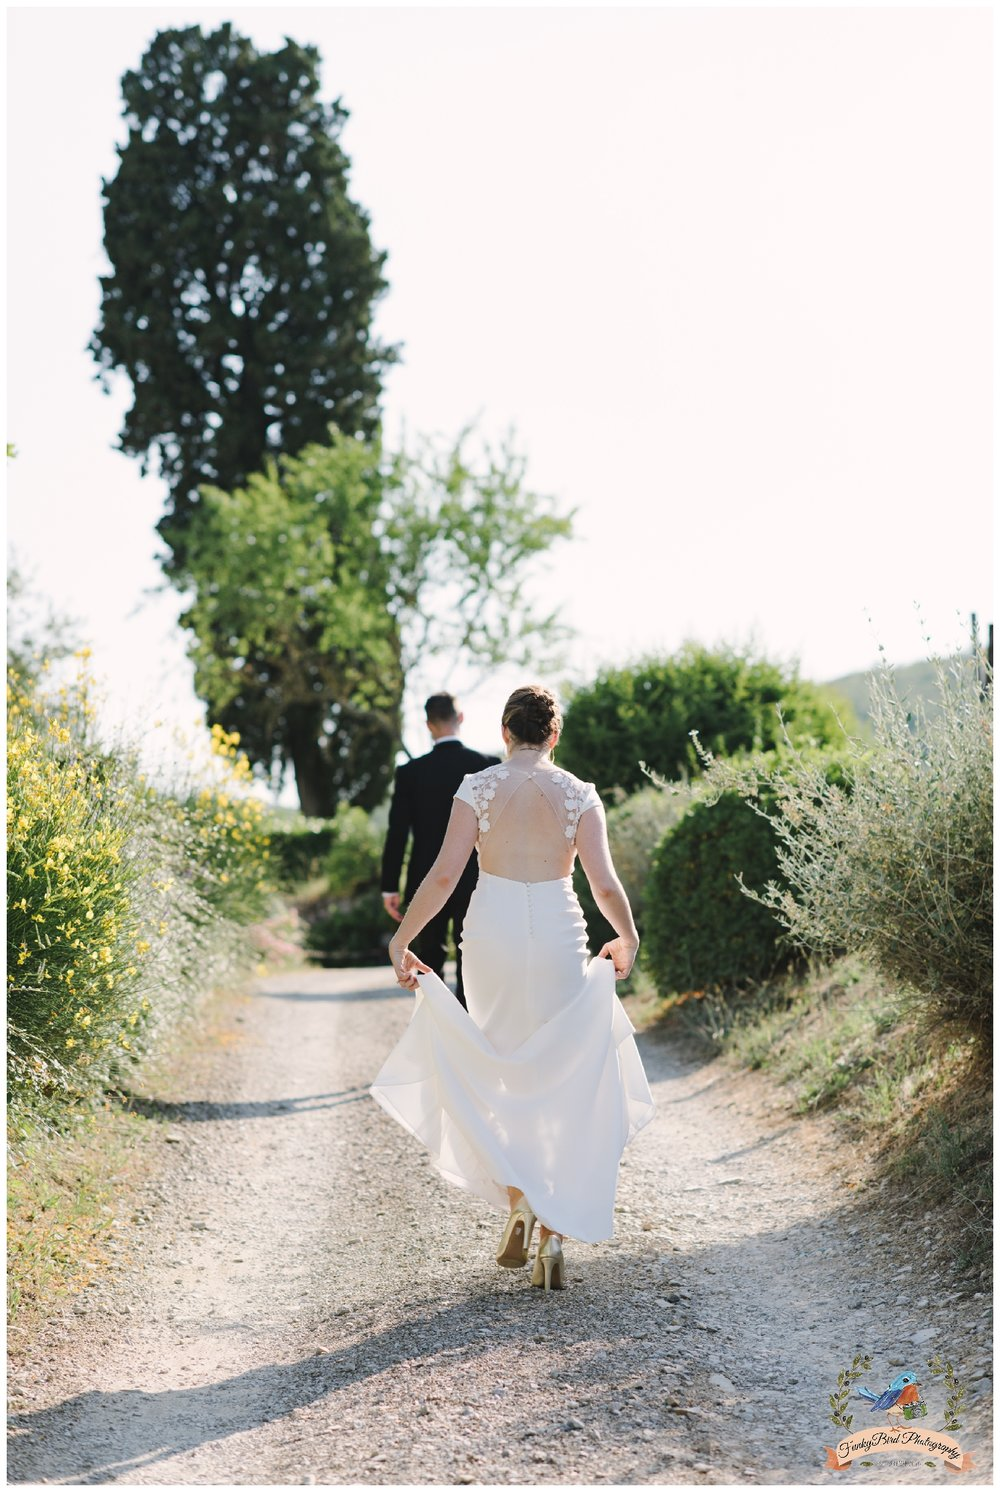 Best Wedding Photographer in Florence